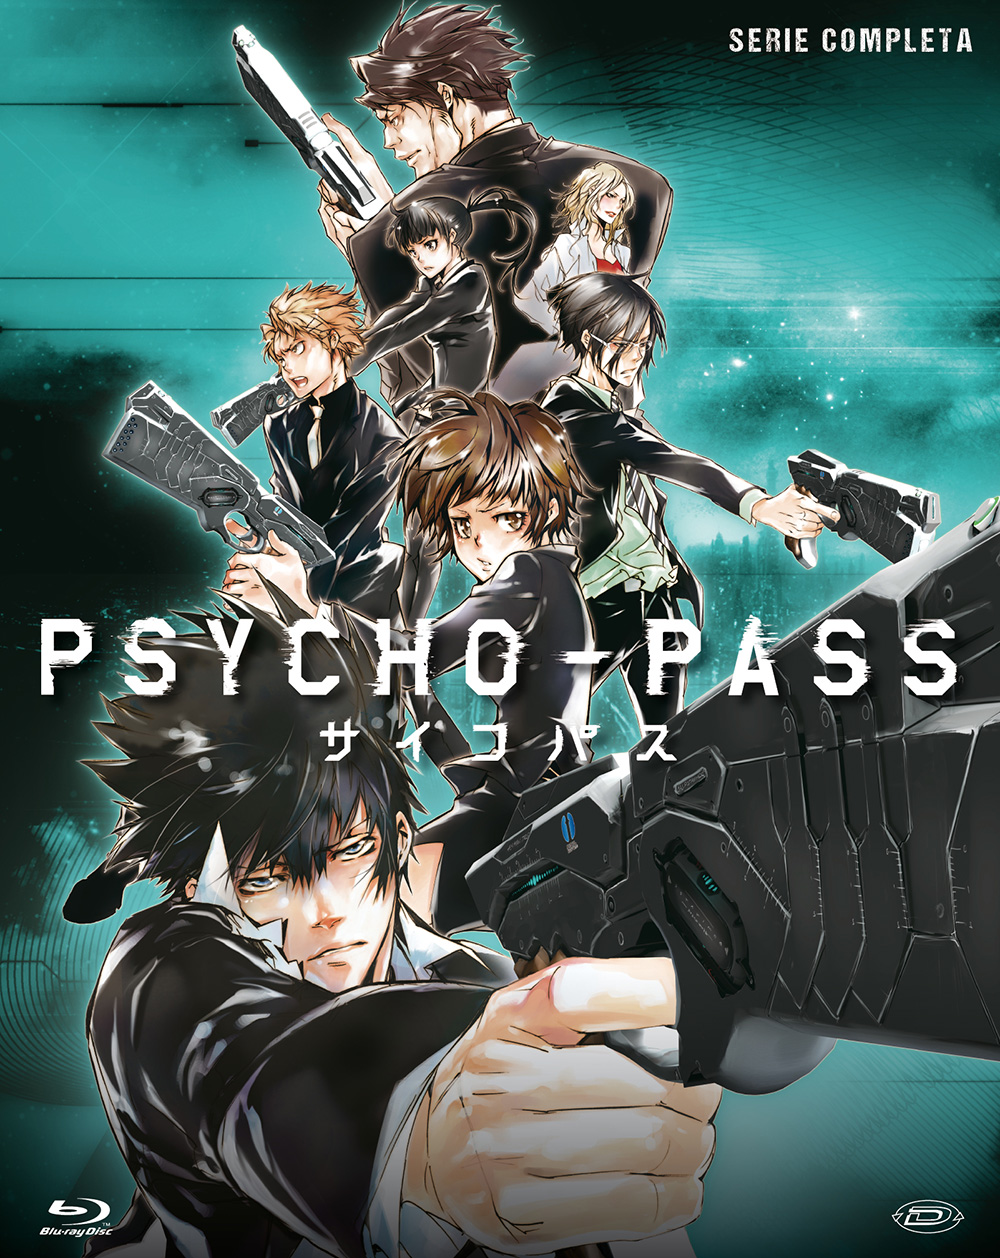 COF.PSYCHO PASS - THE COMPLETE SERIES (EPS 01-22) (4 BLU-RAY)